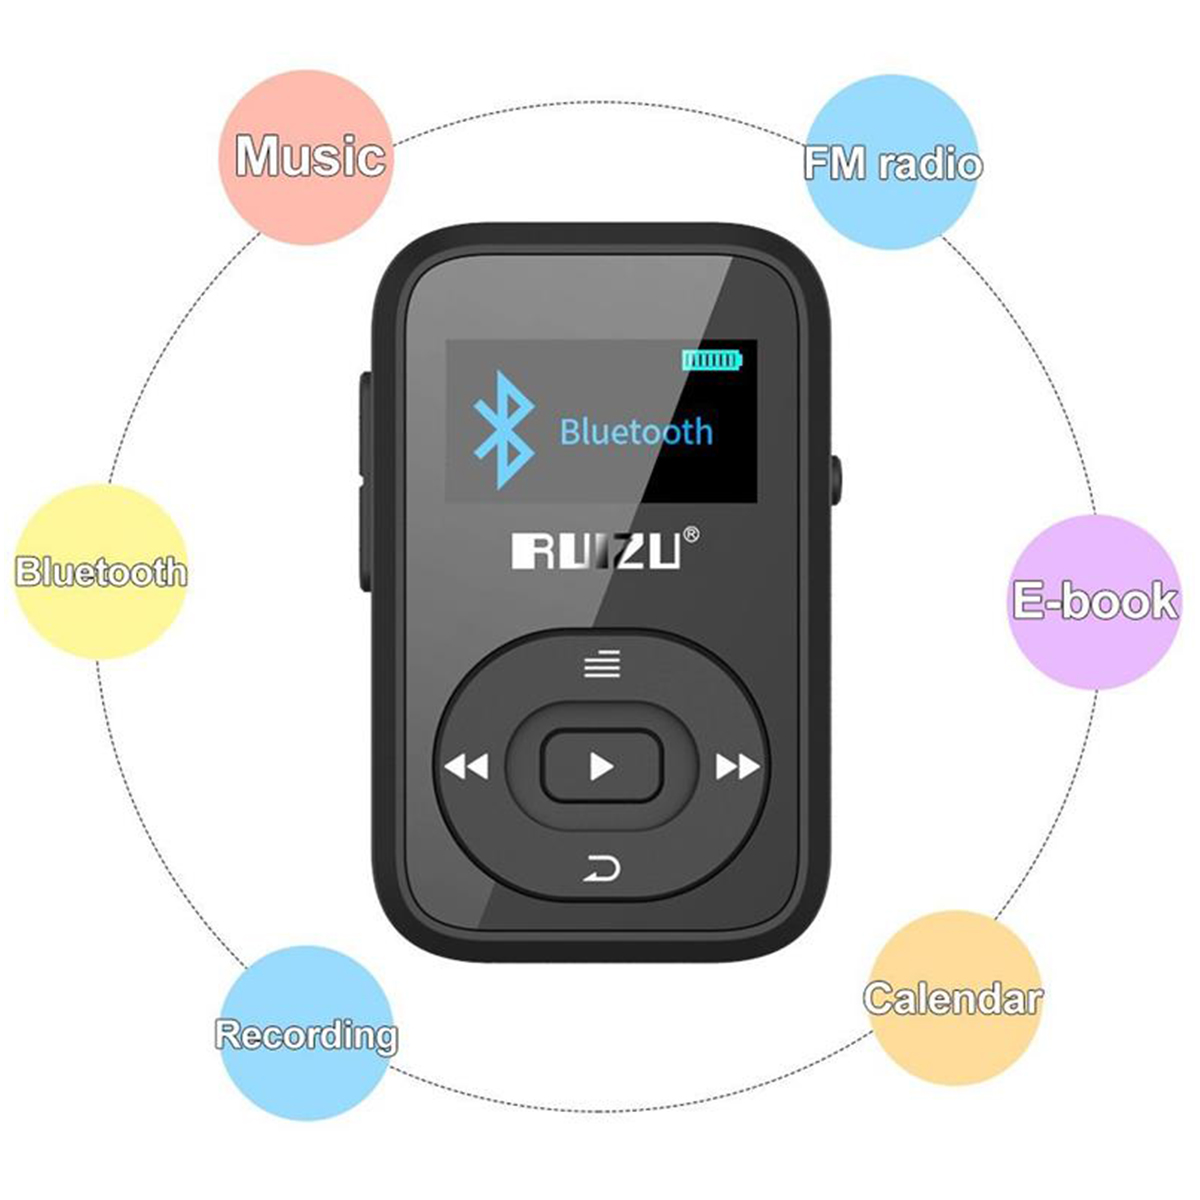 RUIZU X26 Bluetooth MP3 player 8GB Sport mp3 music player with recorder FM radio e-book support TF card free download image